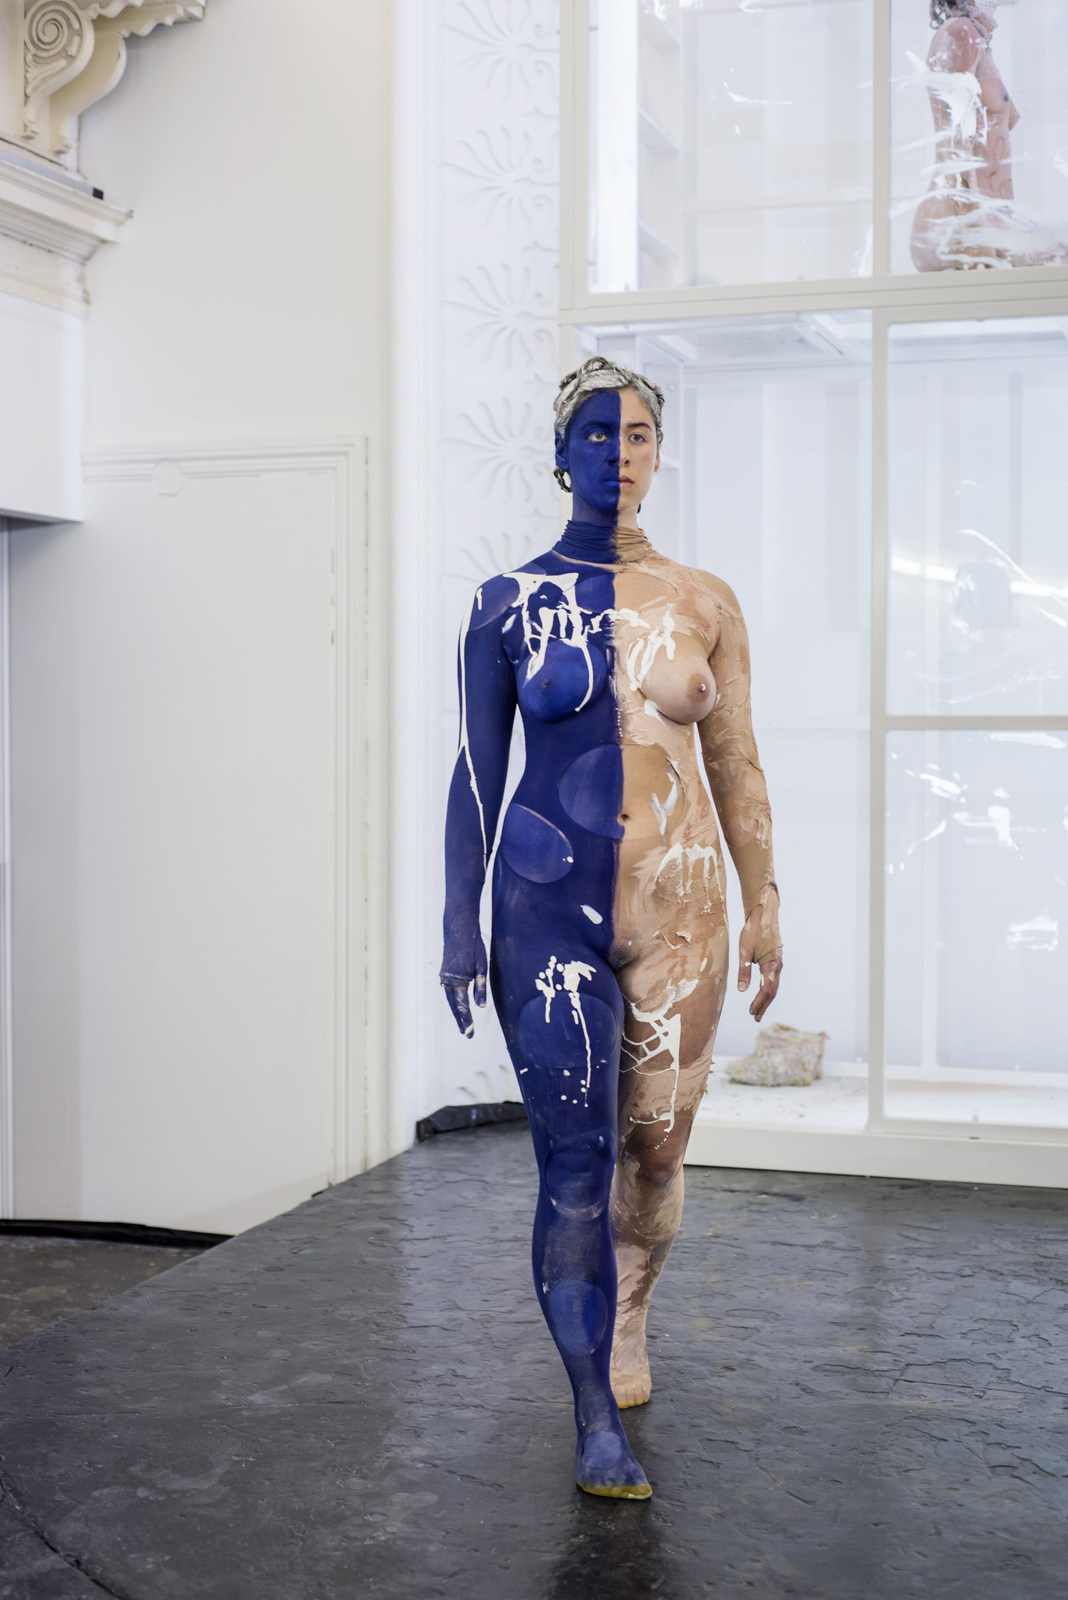 Donna Huanca - Scar Cymbals - performance 07.10.16 - Image Thierry Bal9